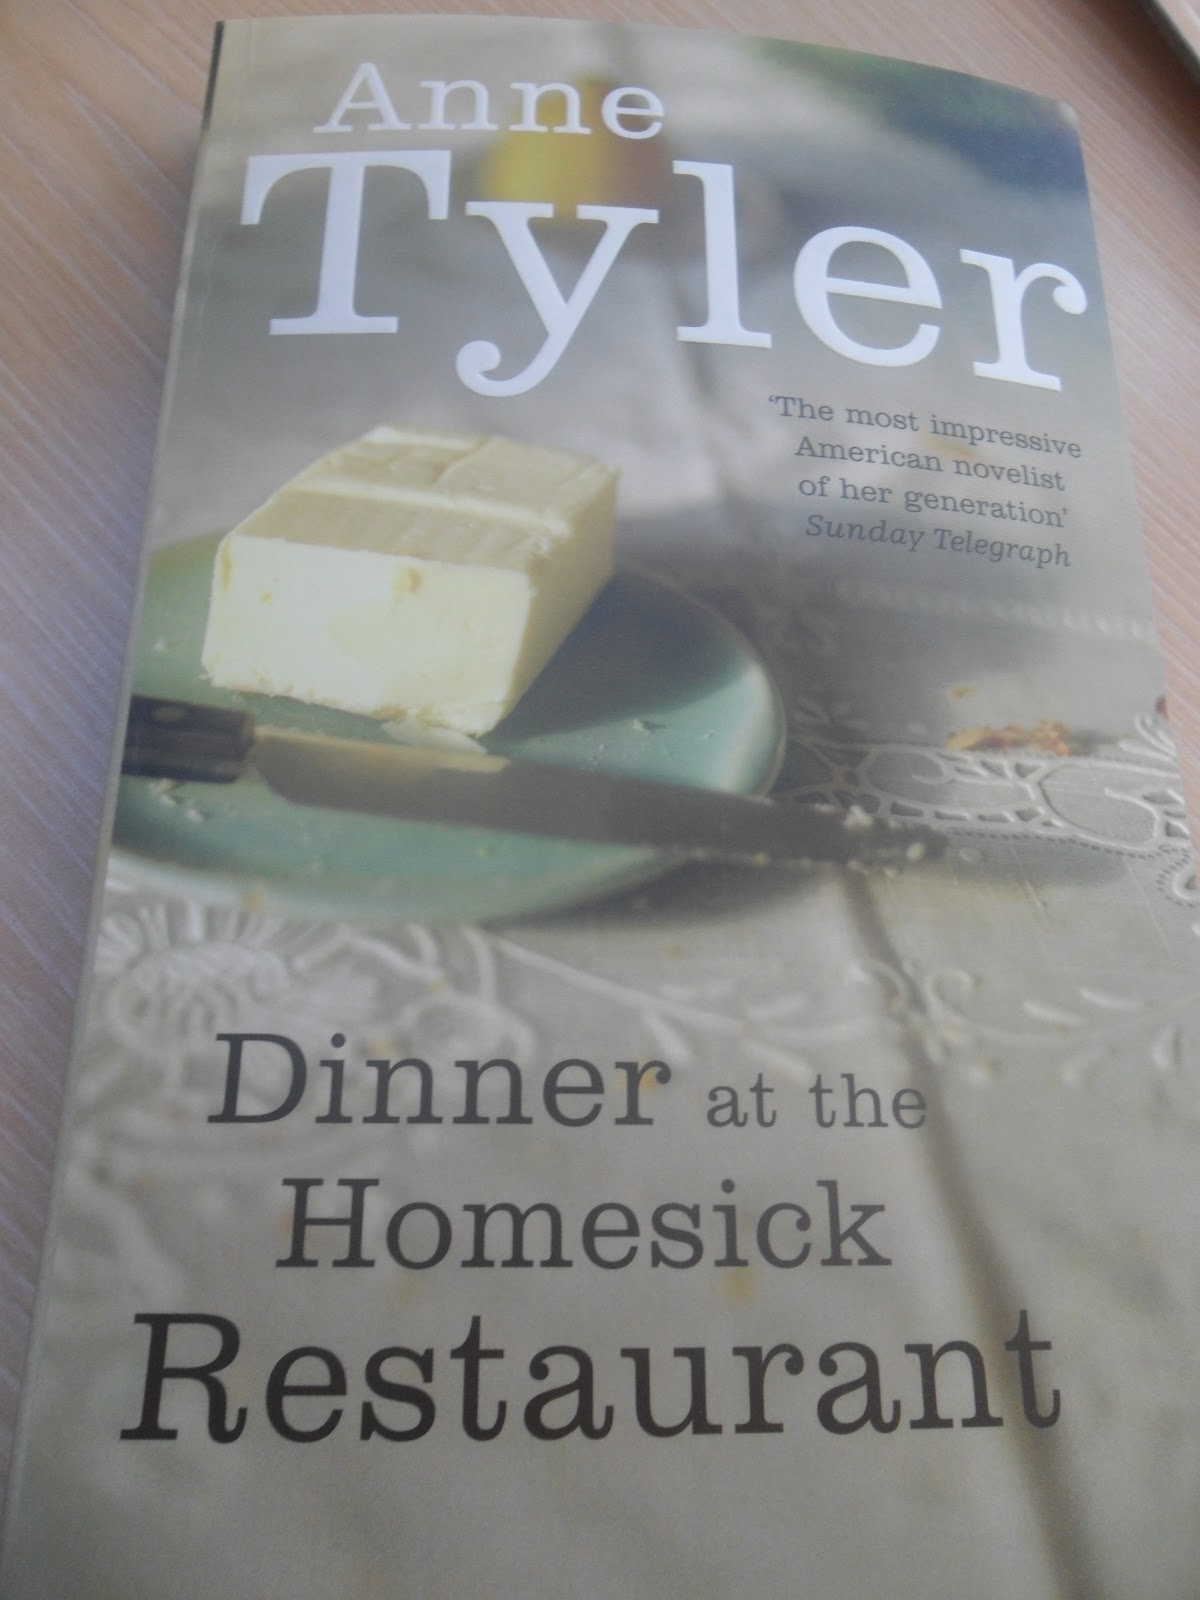 an analysis of ezra a character in dinner at the homesick restaurant by anne tyler Teenage wasteland anne tyler's short  the evolution and maturity of anne's character over a few  family in anne tyler's dinner at the homesick restaurant.